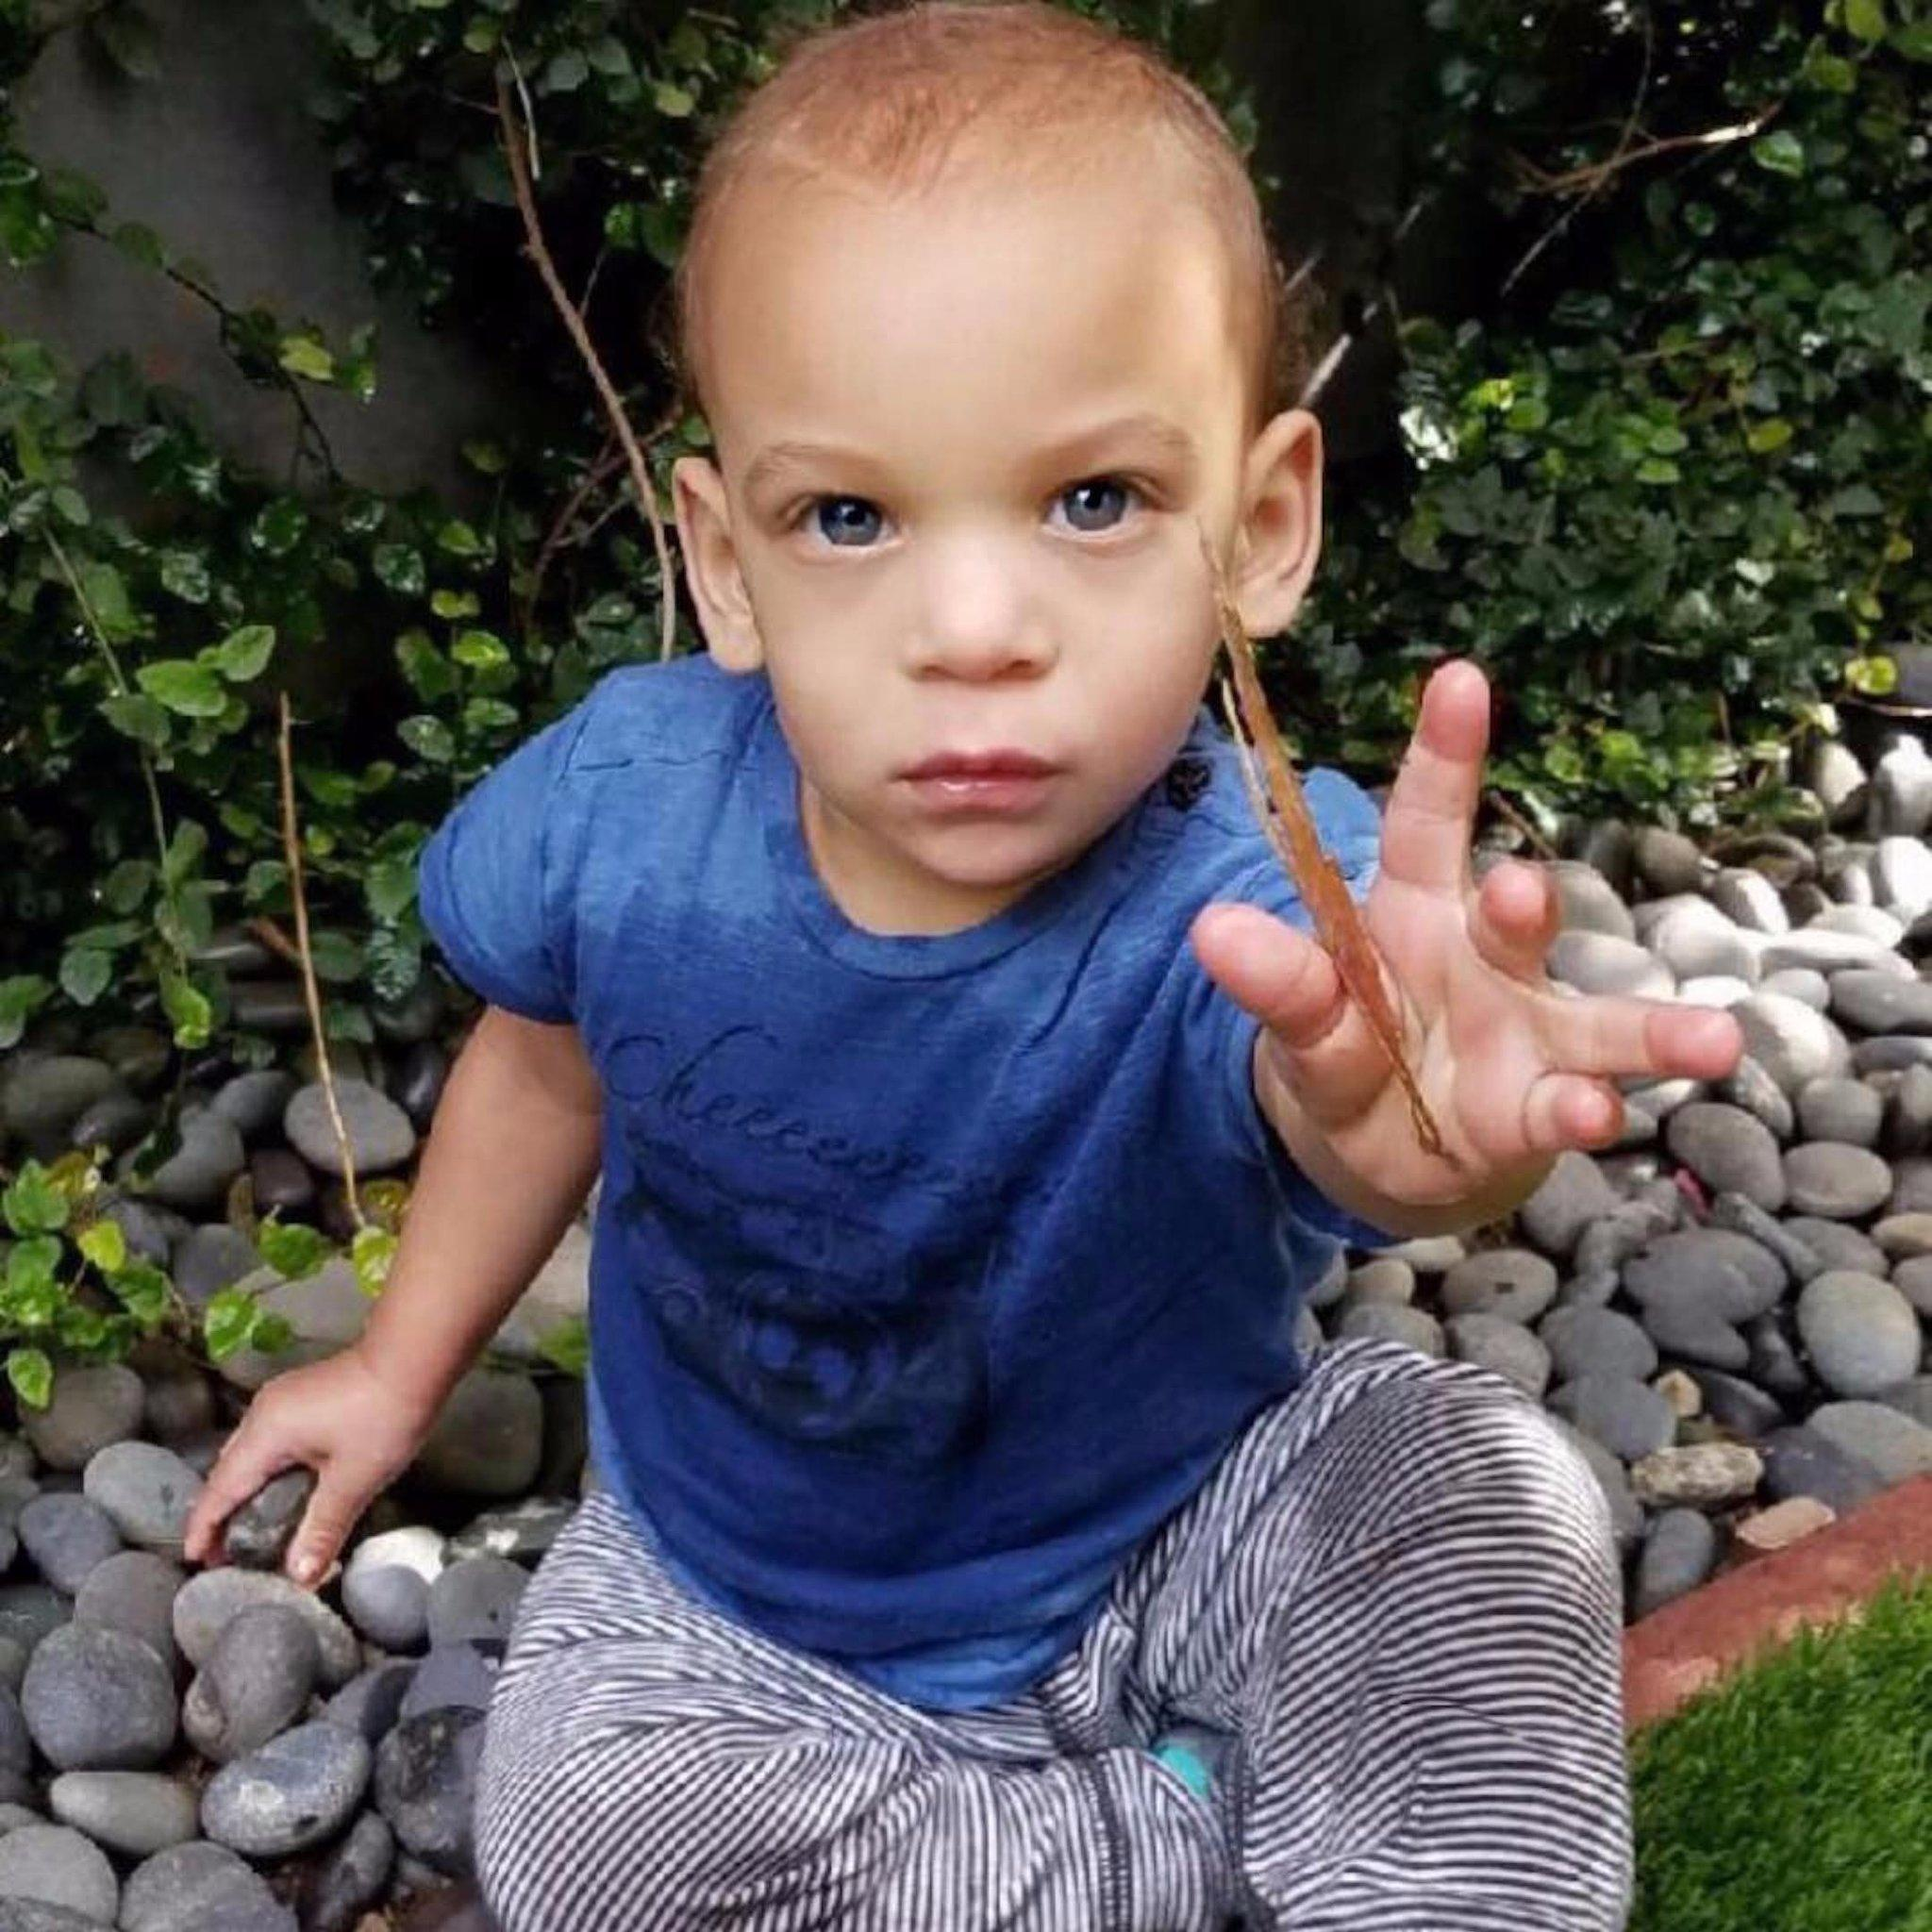 Tyra Banks Son: Tyra Banks Shares The First Full Photo Of Her Precious